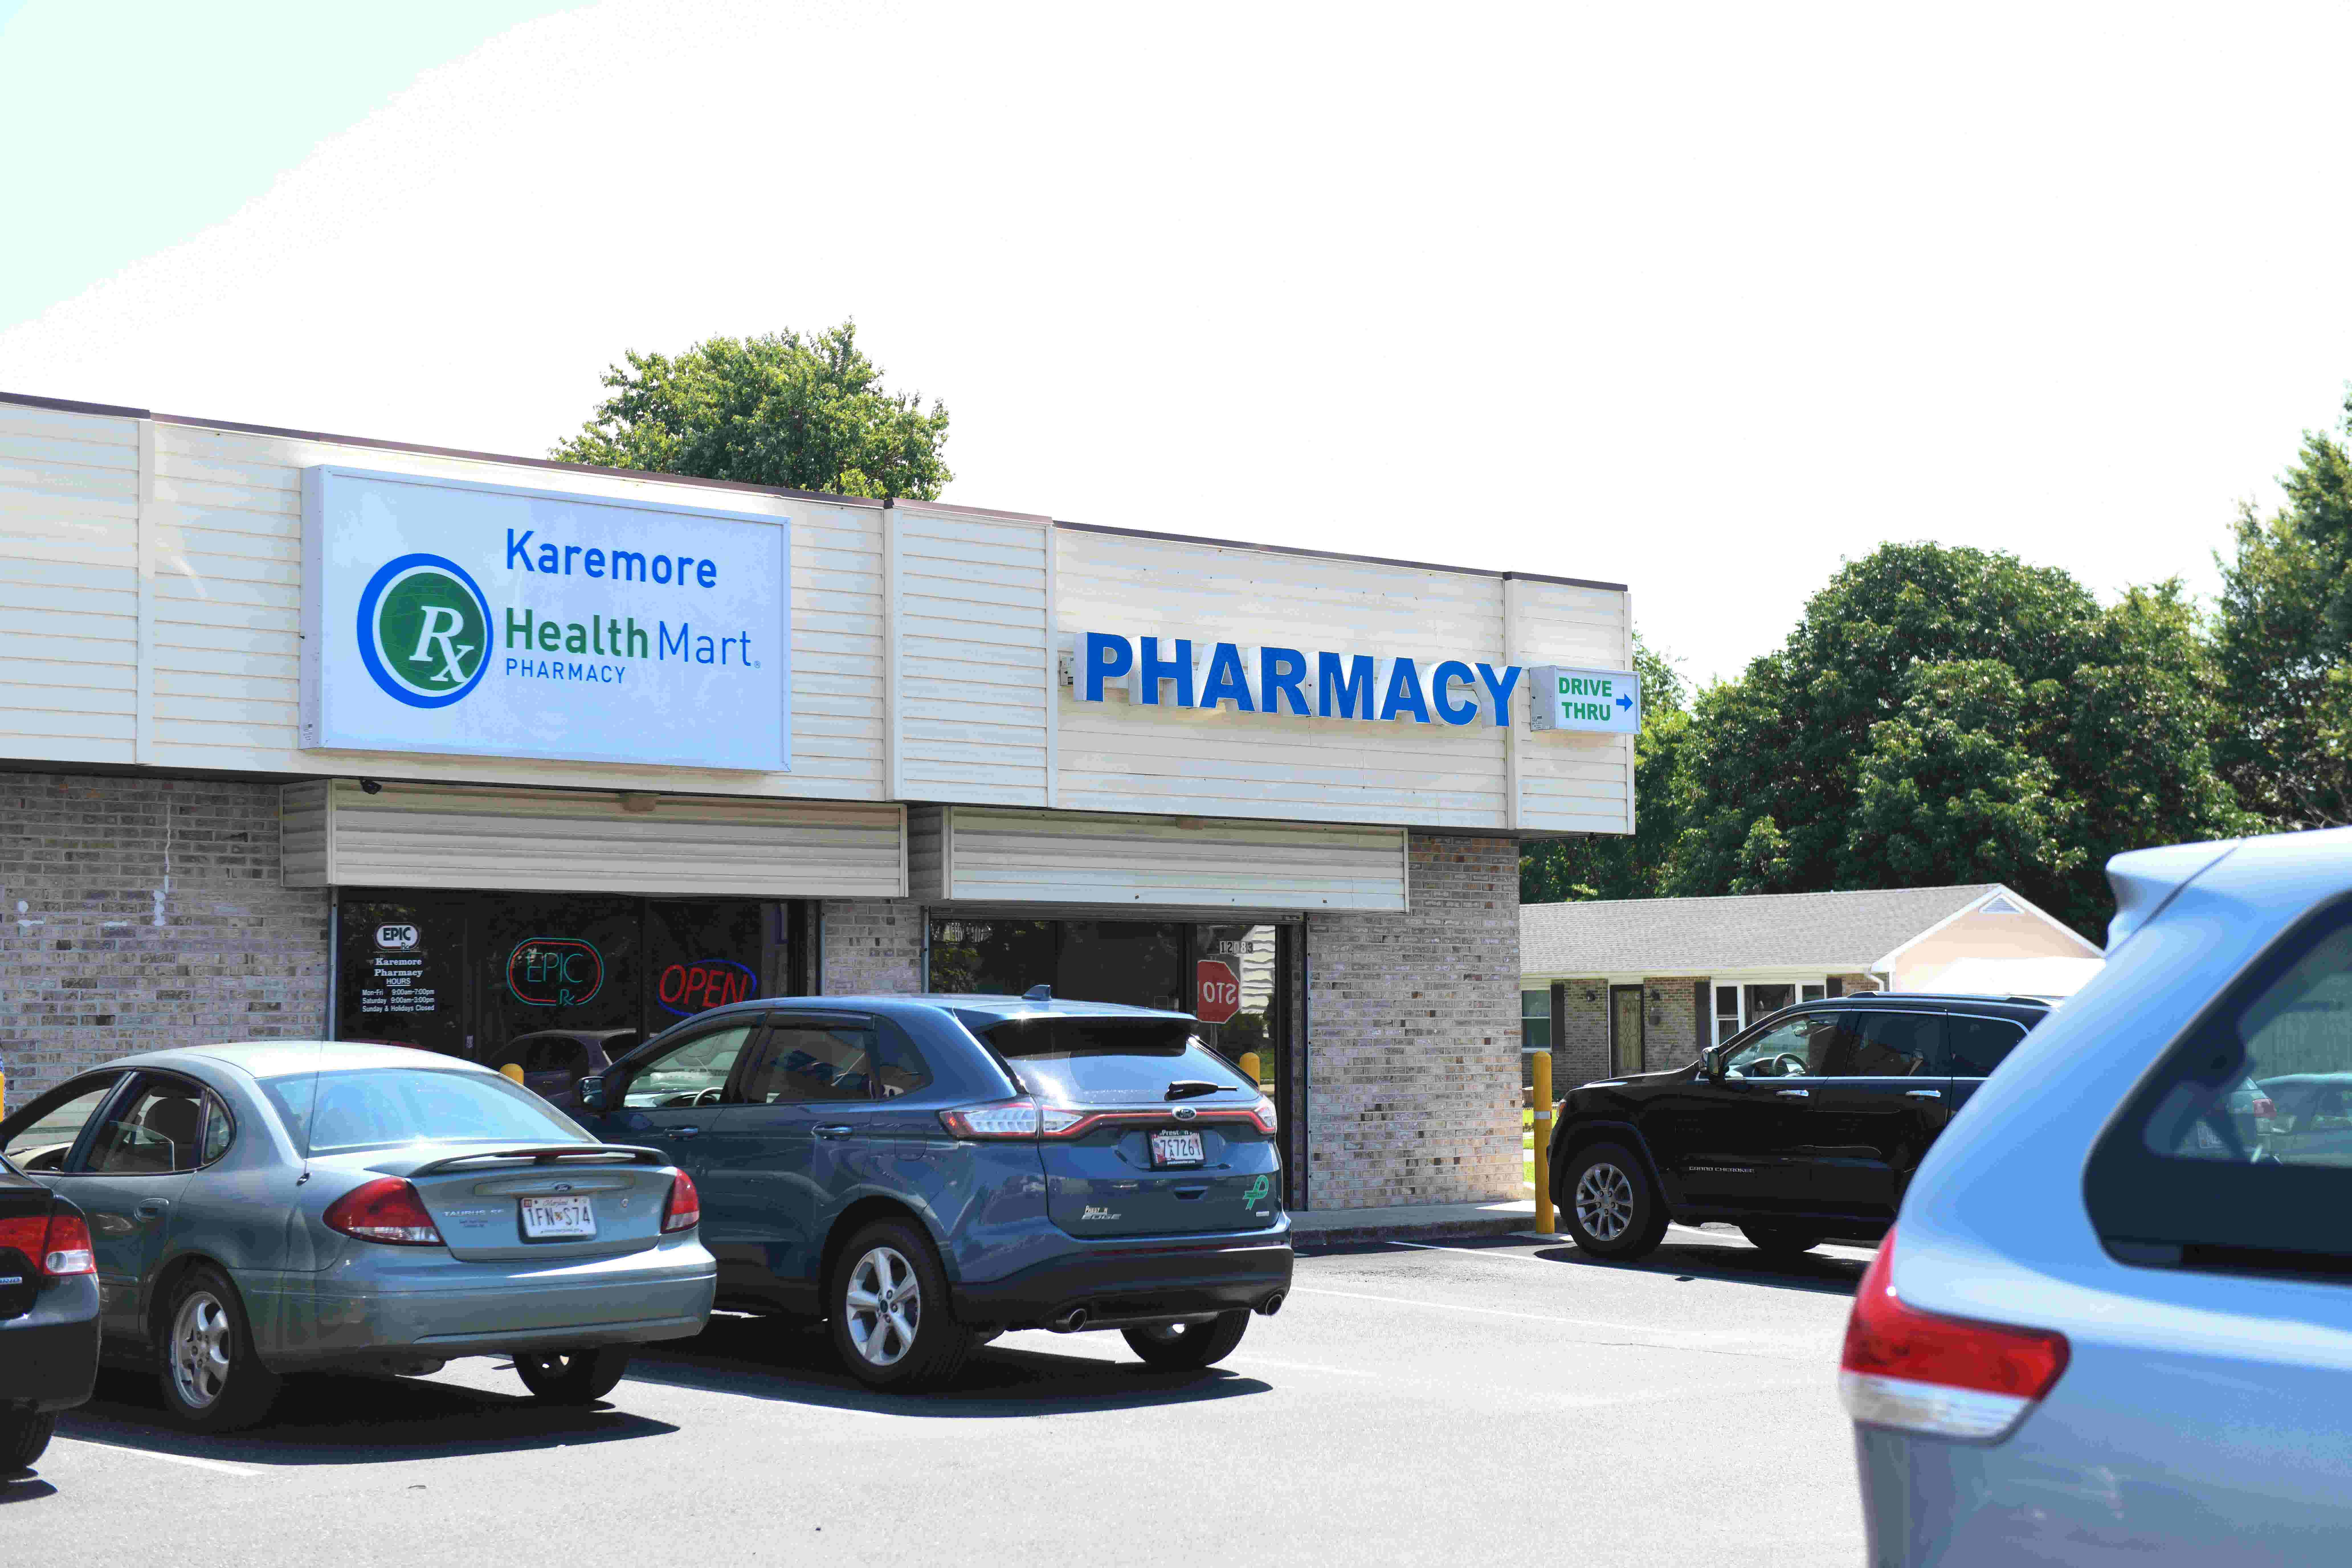 WATCH: Armed pharmacist chases off would-be robbers